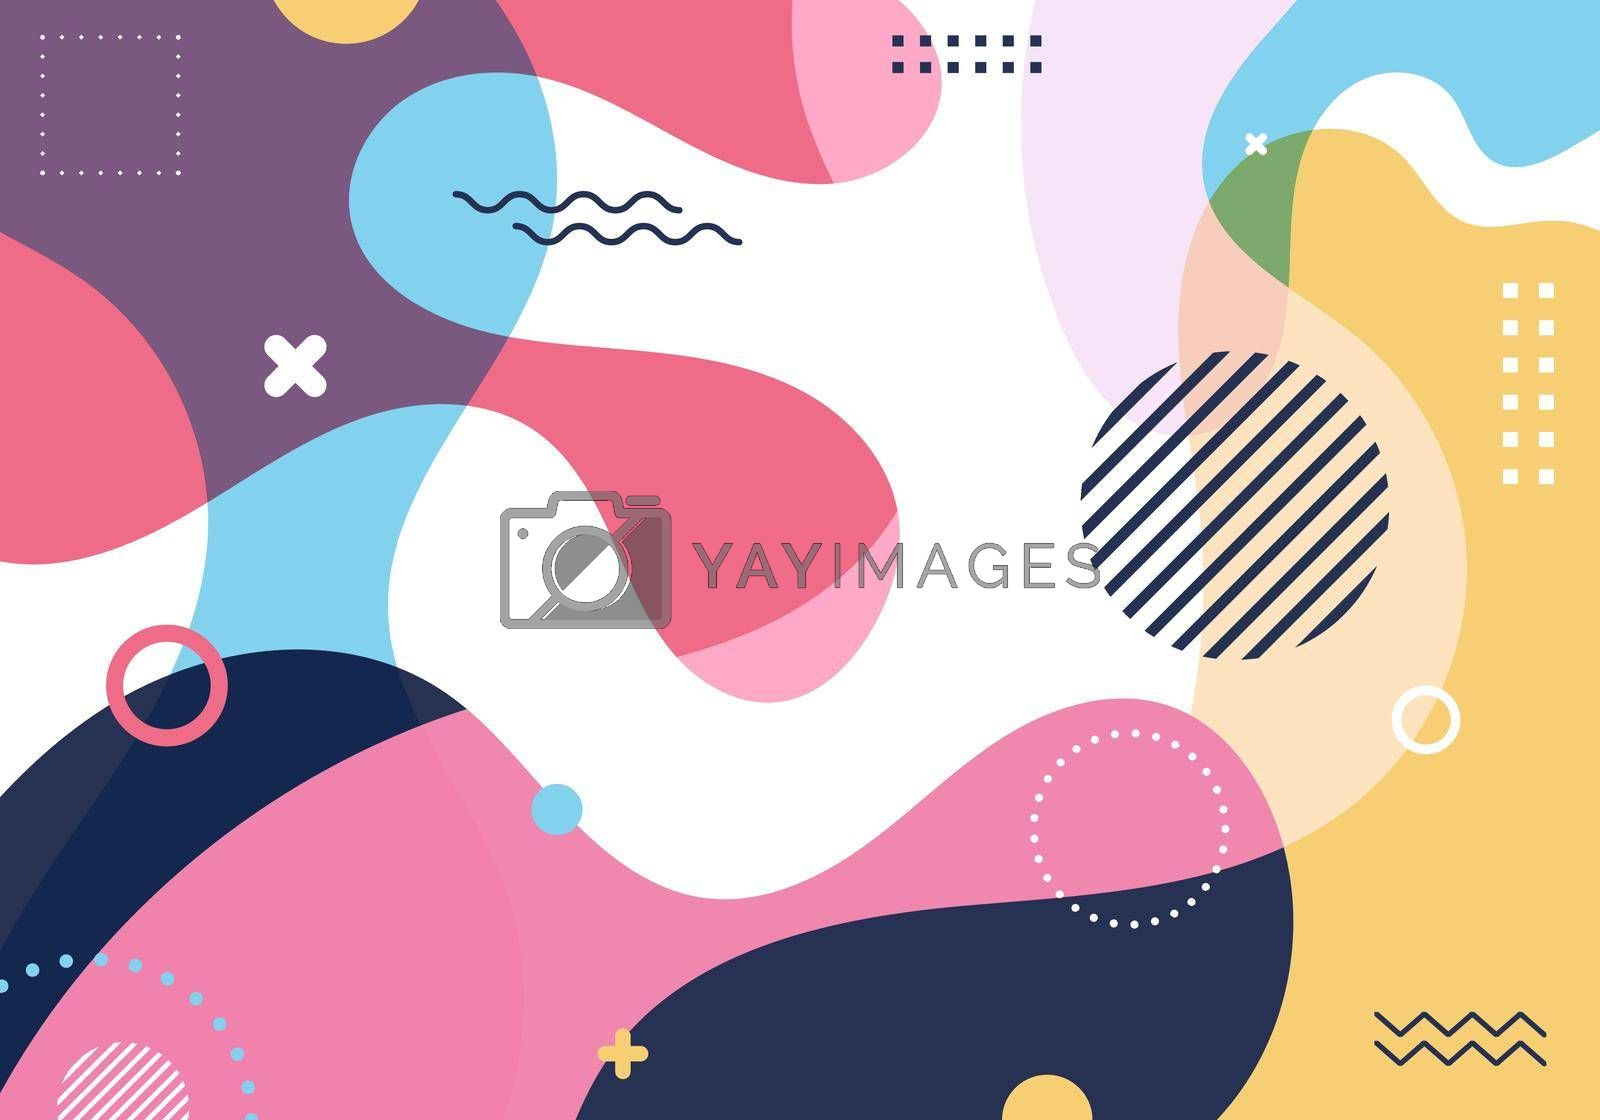 Royalty free image of Abstract fluid shape colorful splash background with geometric shapes elements pattern in retro 80s-90s style by phochi